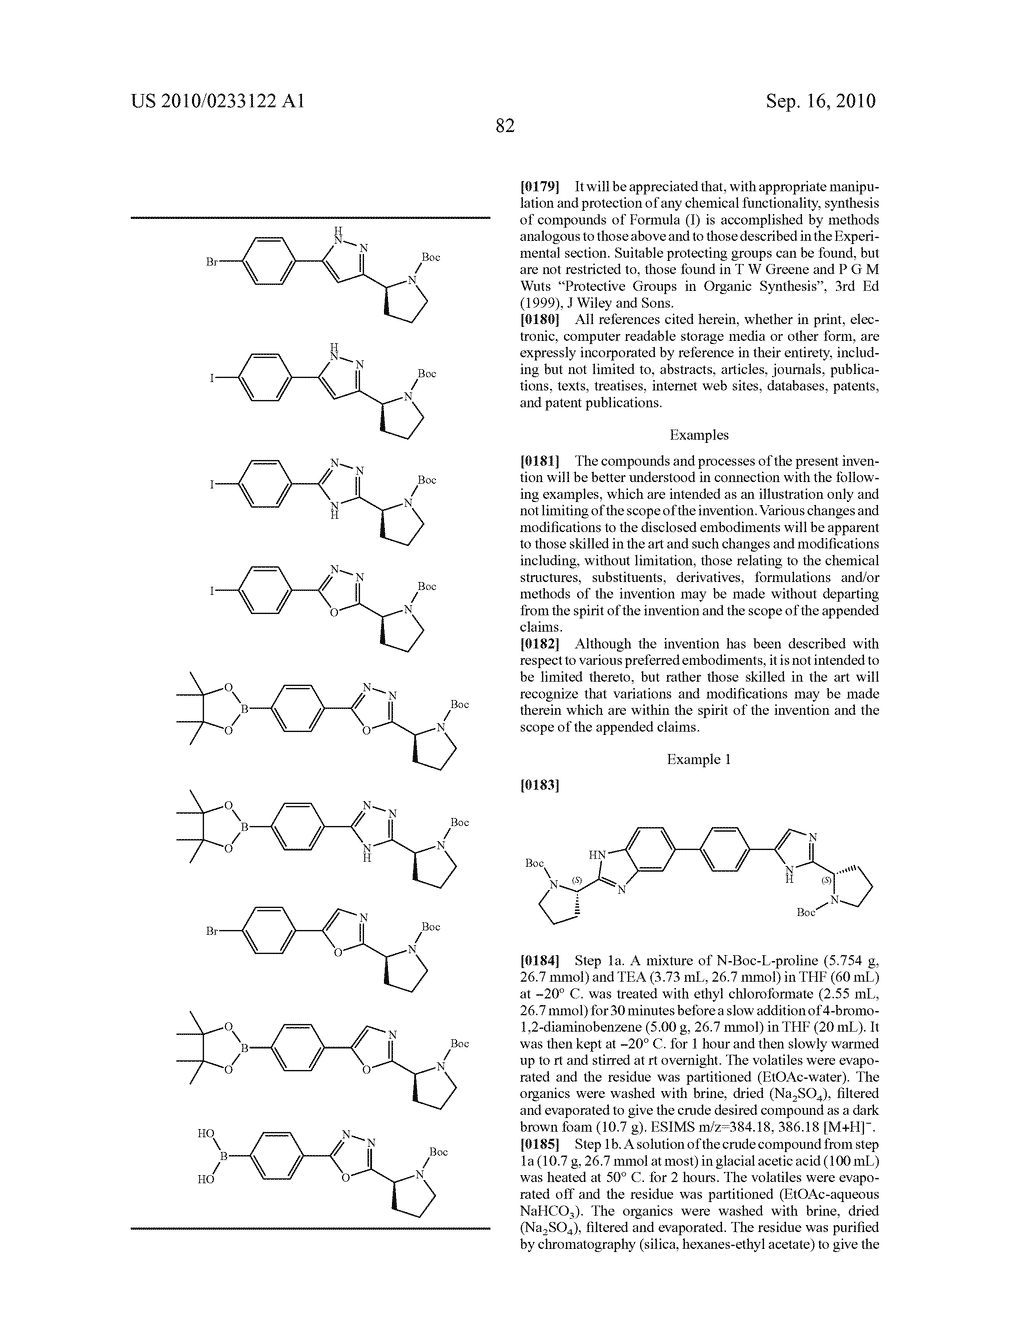 NOVEL BENZIMIDAZOLE DERIVATIVES - diagram, schematic, and image 83